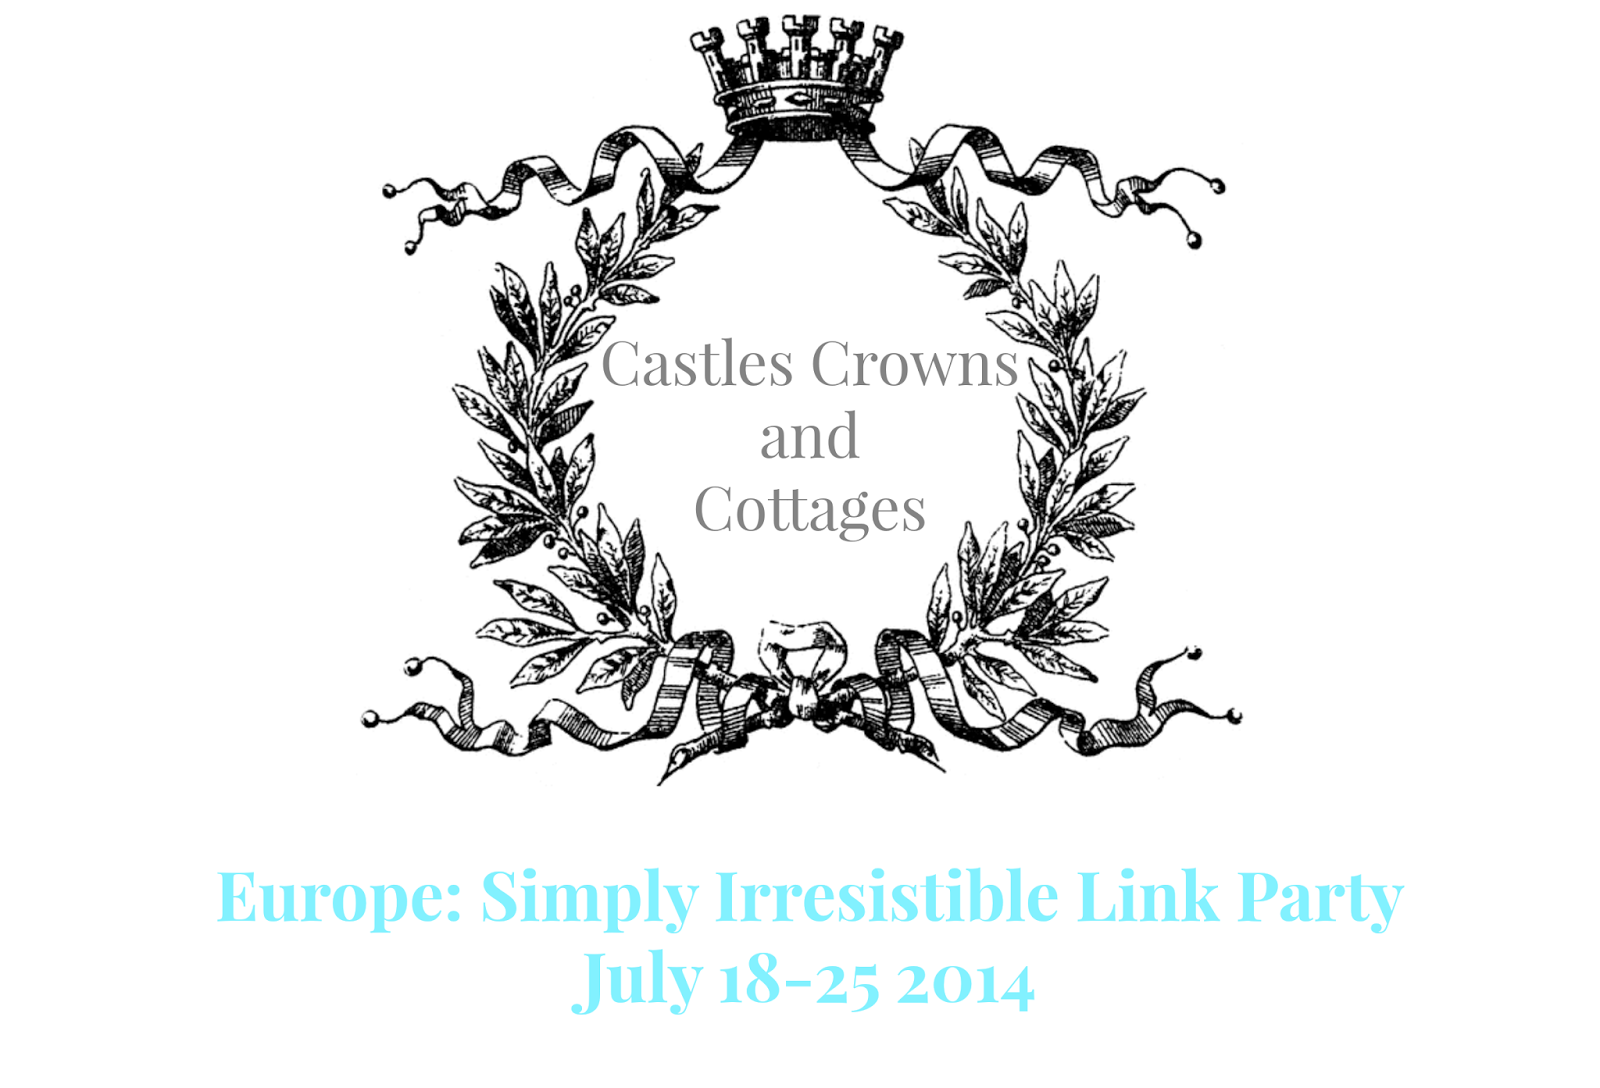 http://wwwcastlescrownscottages.blogspot.com/